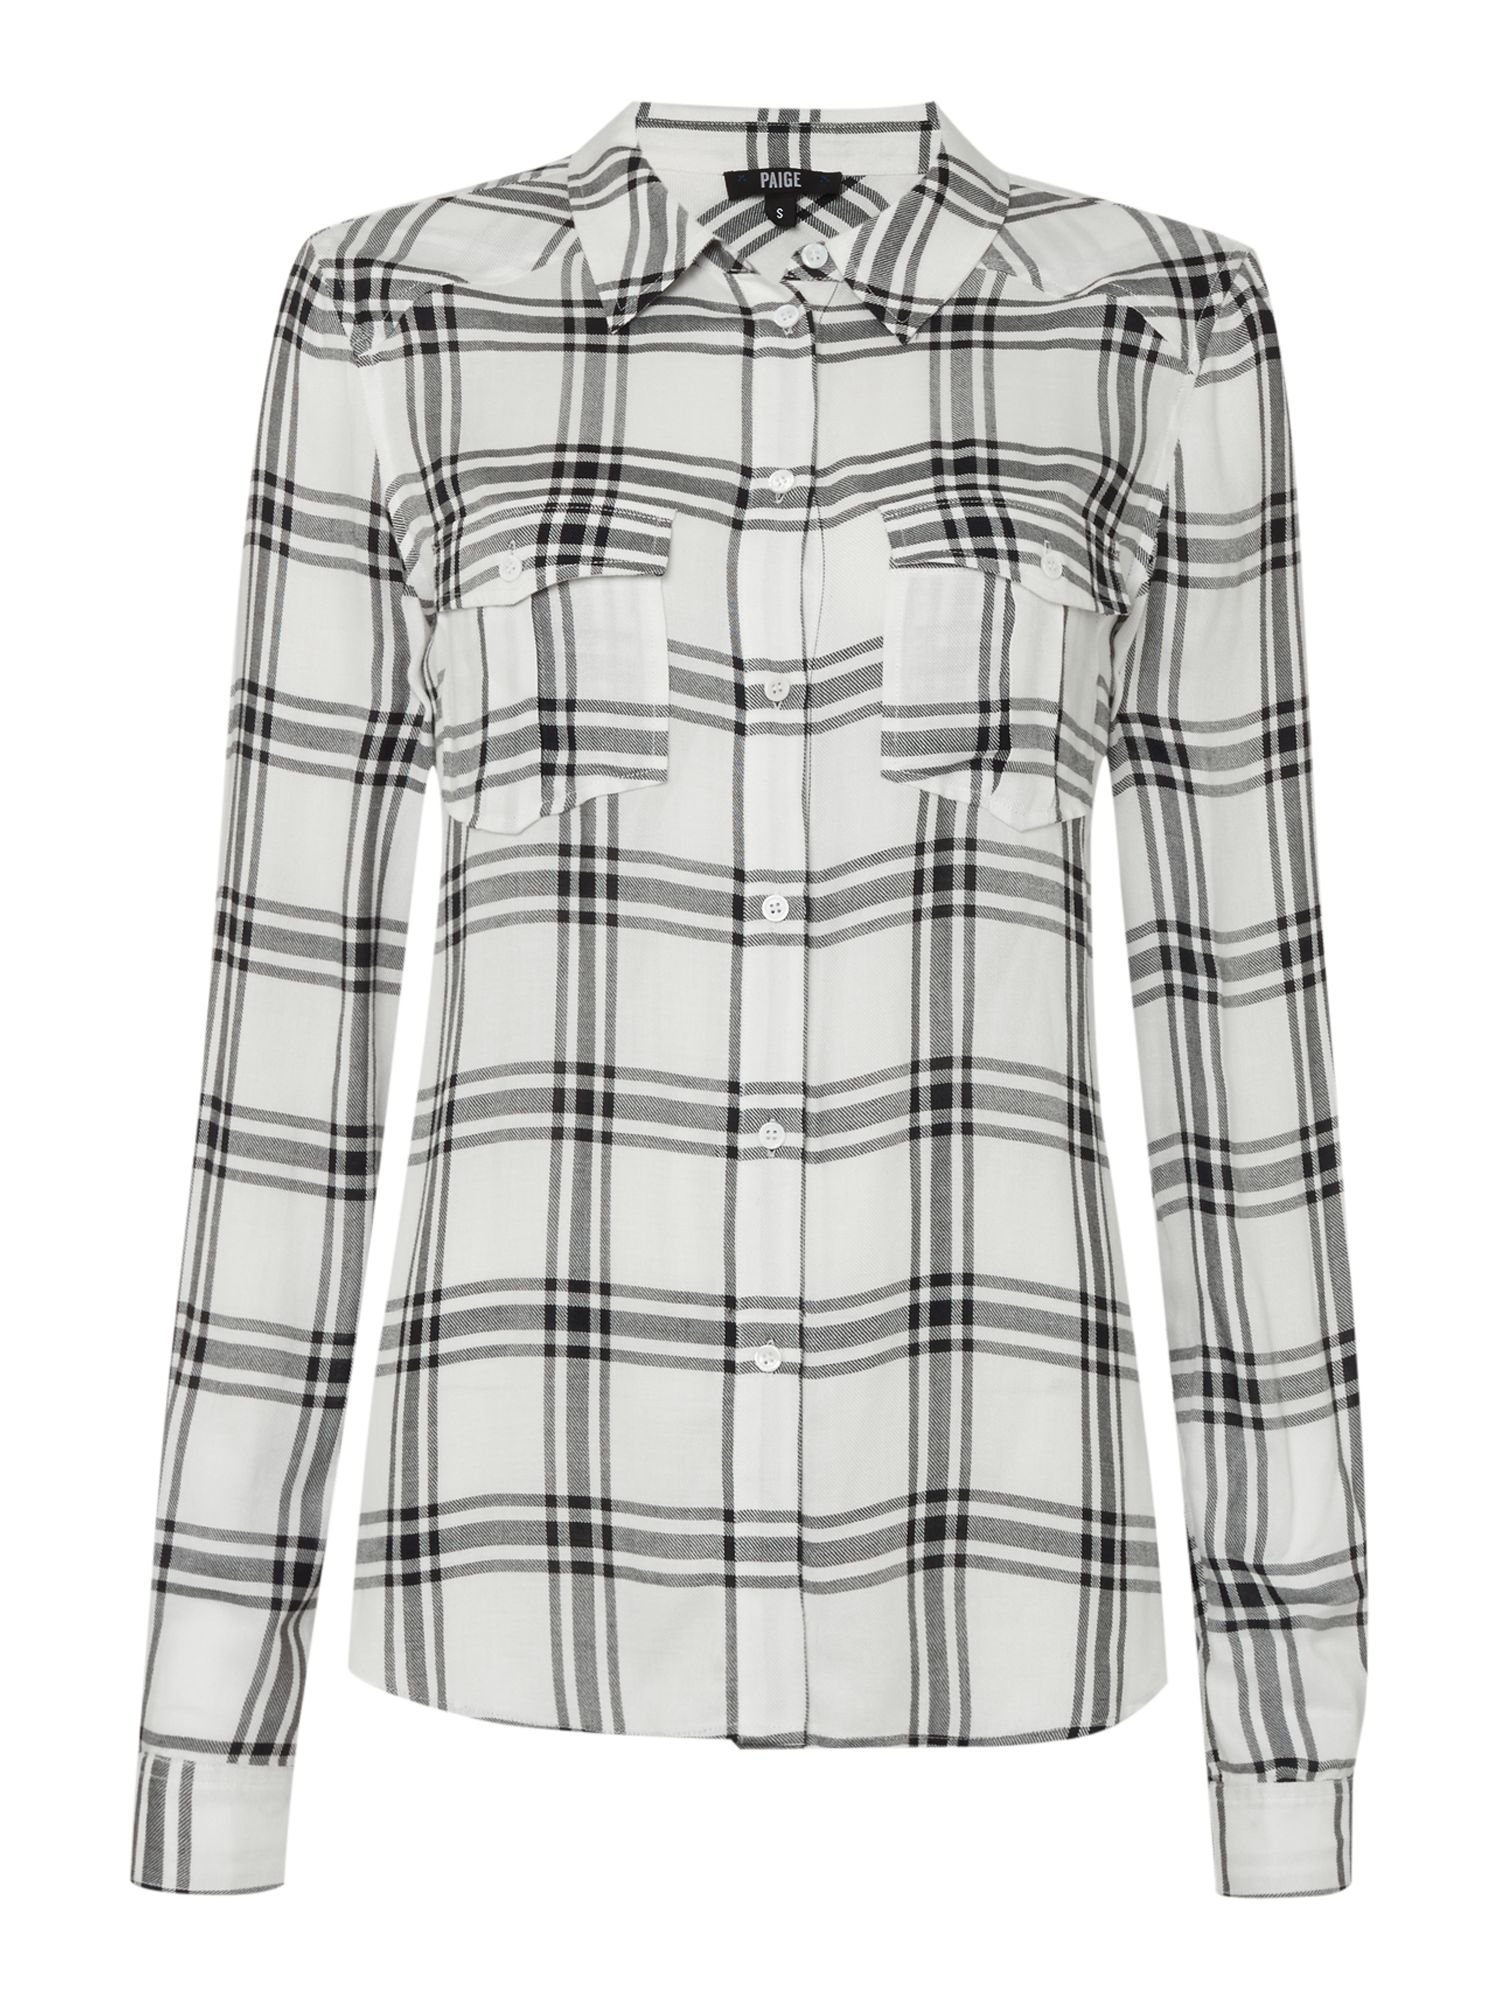 Paige Mya checked shirt, Black/White